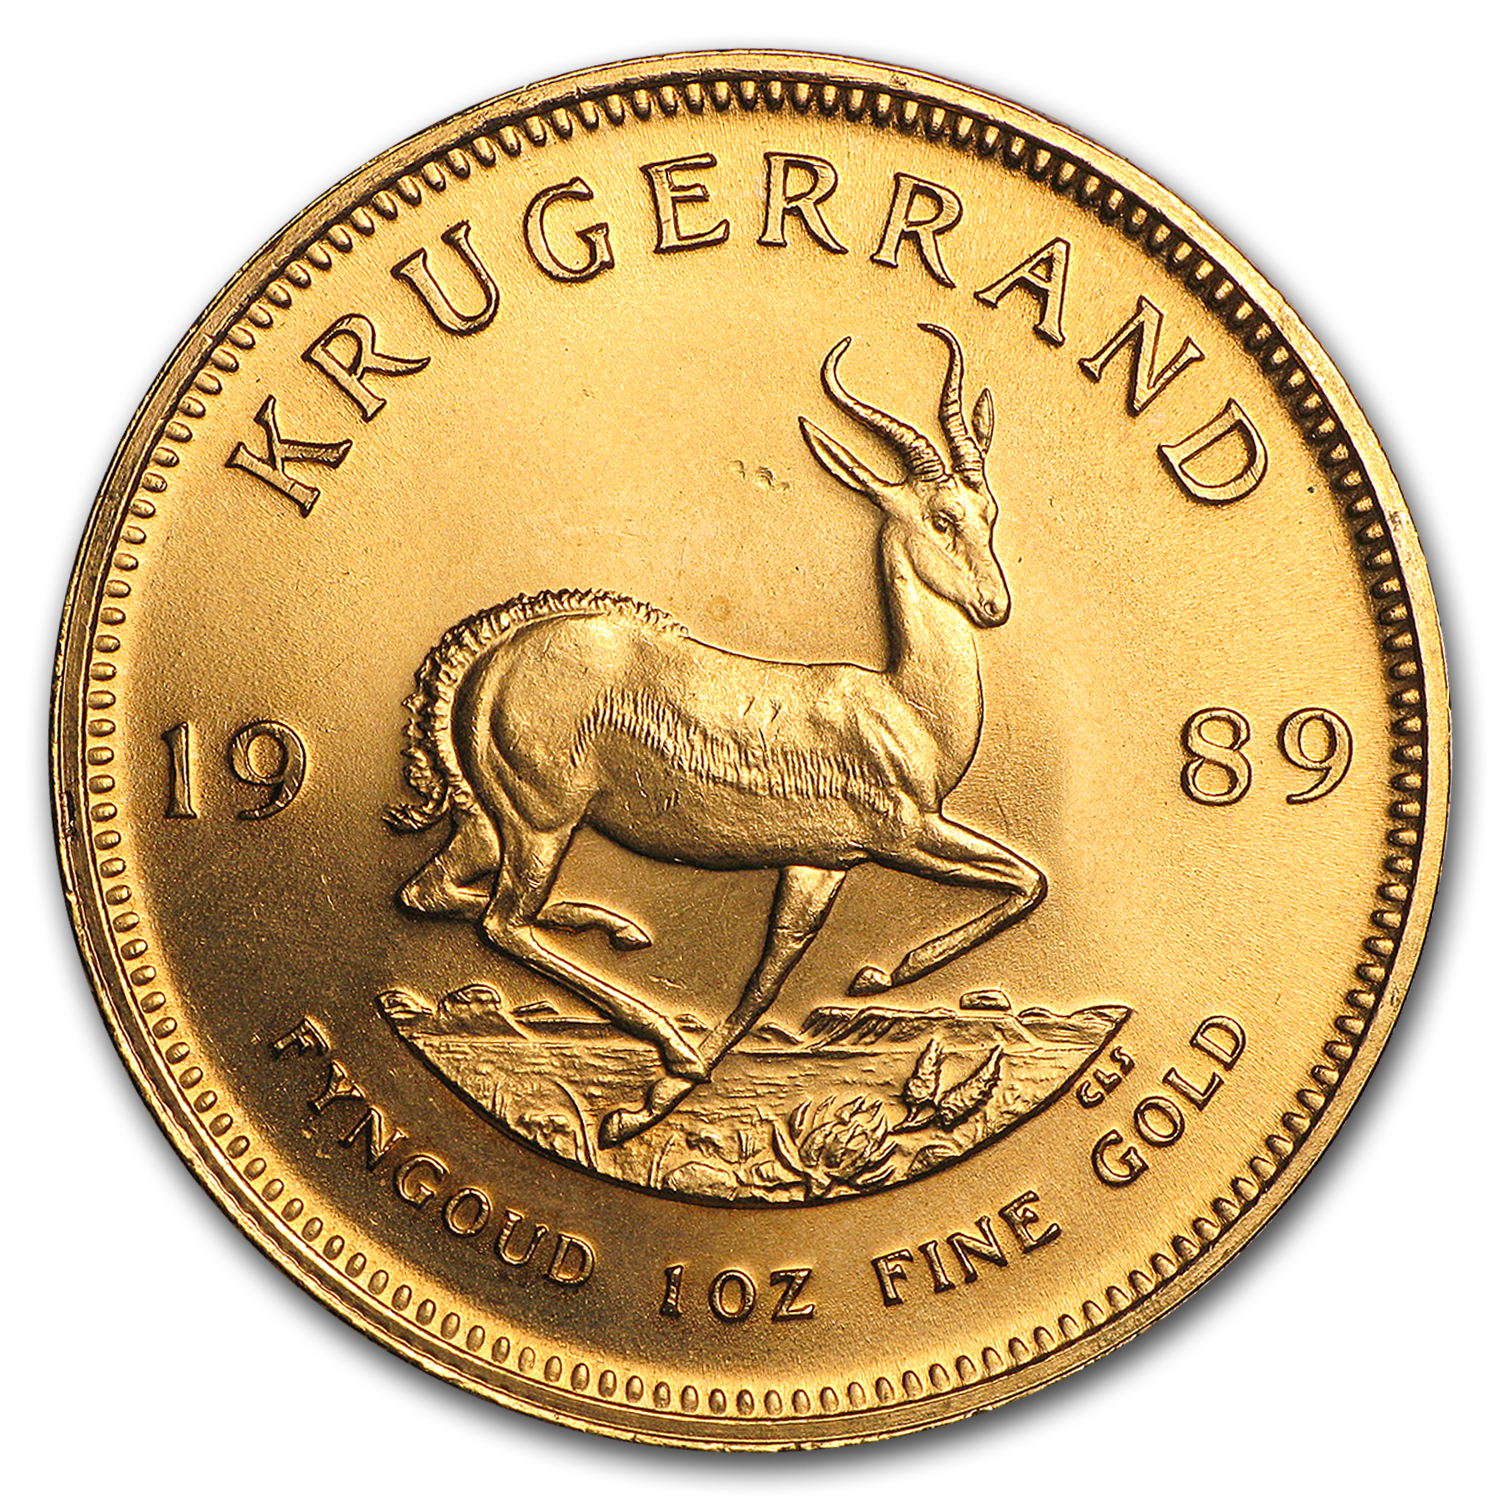 1989 South Africa 1 oz Gold Krugerrand